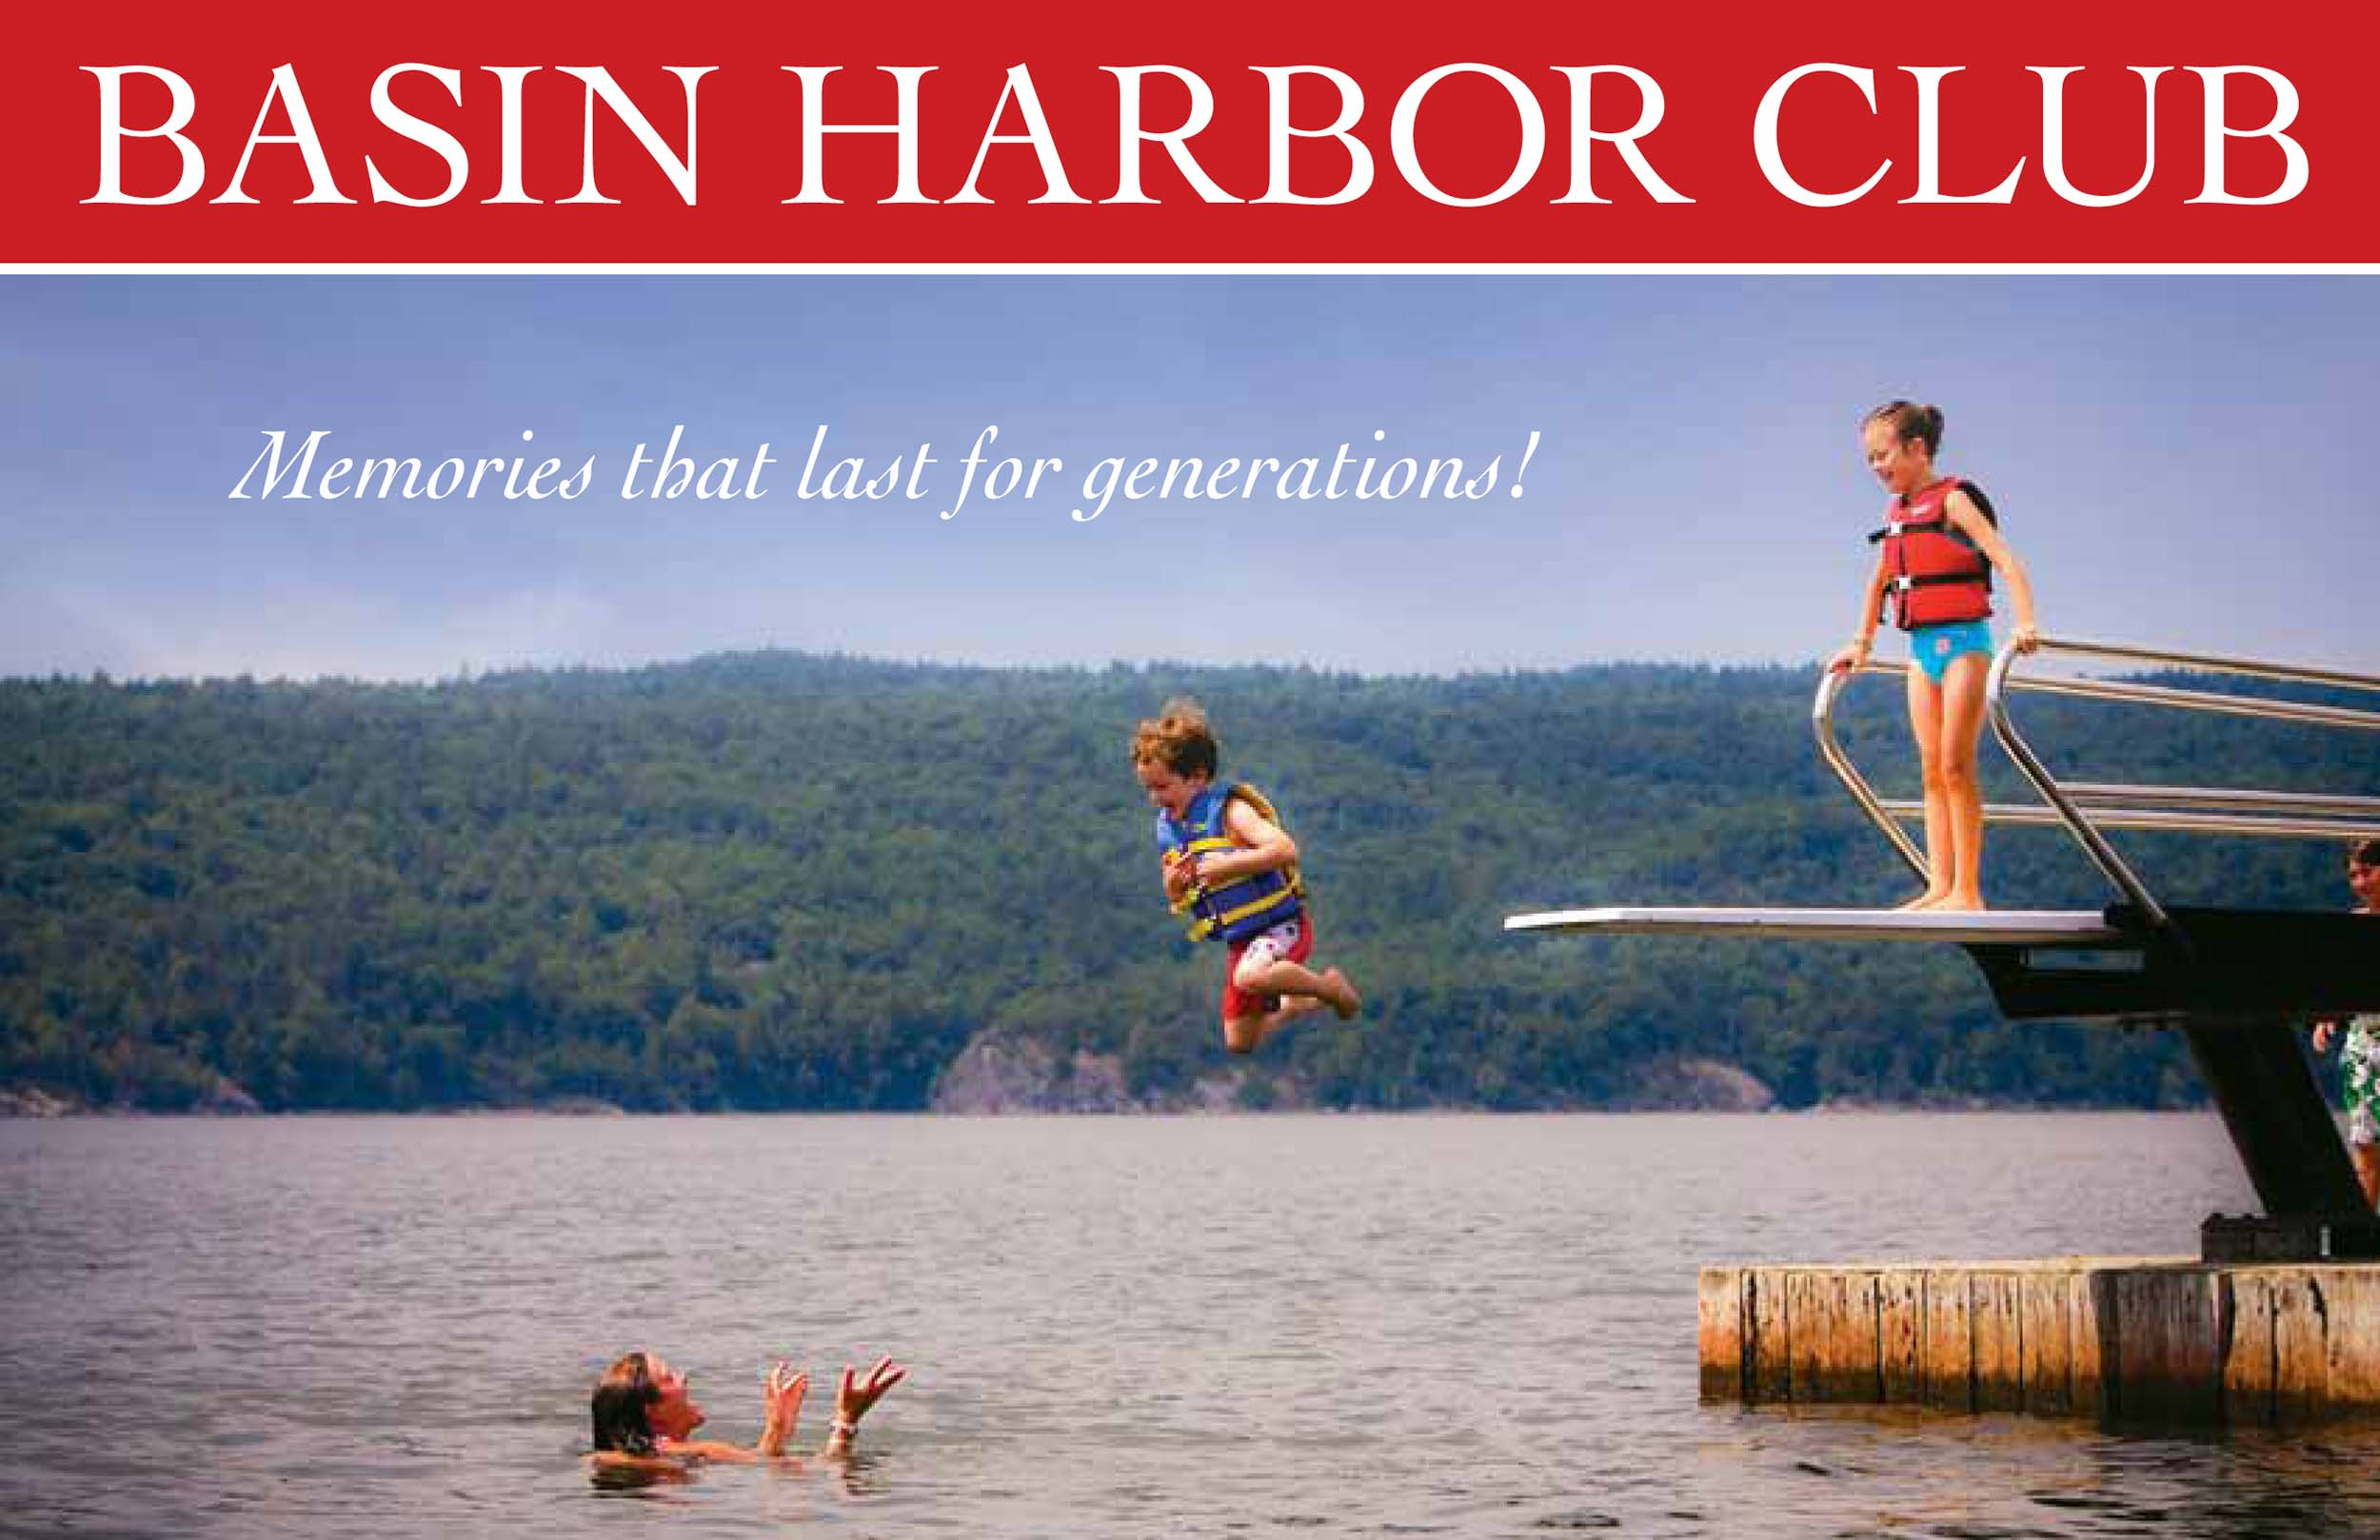 Basin Harbor Club Calendar 2011 (small)